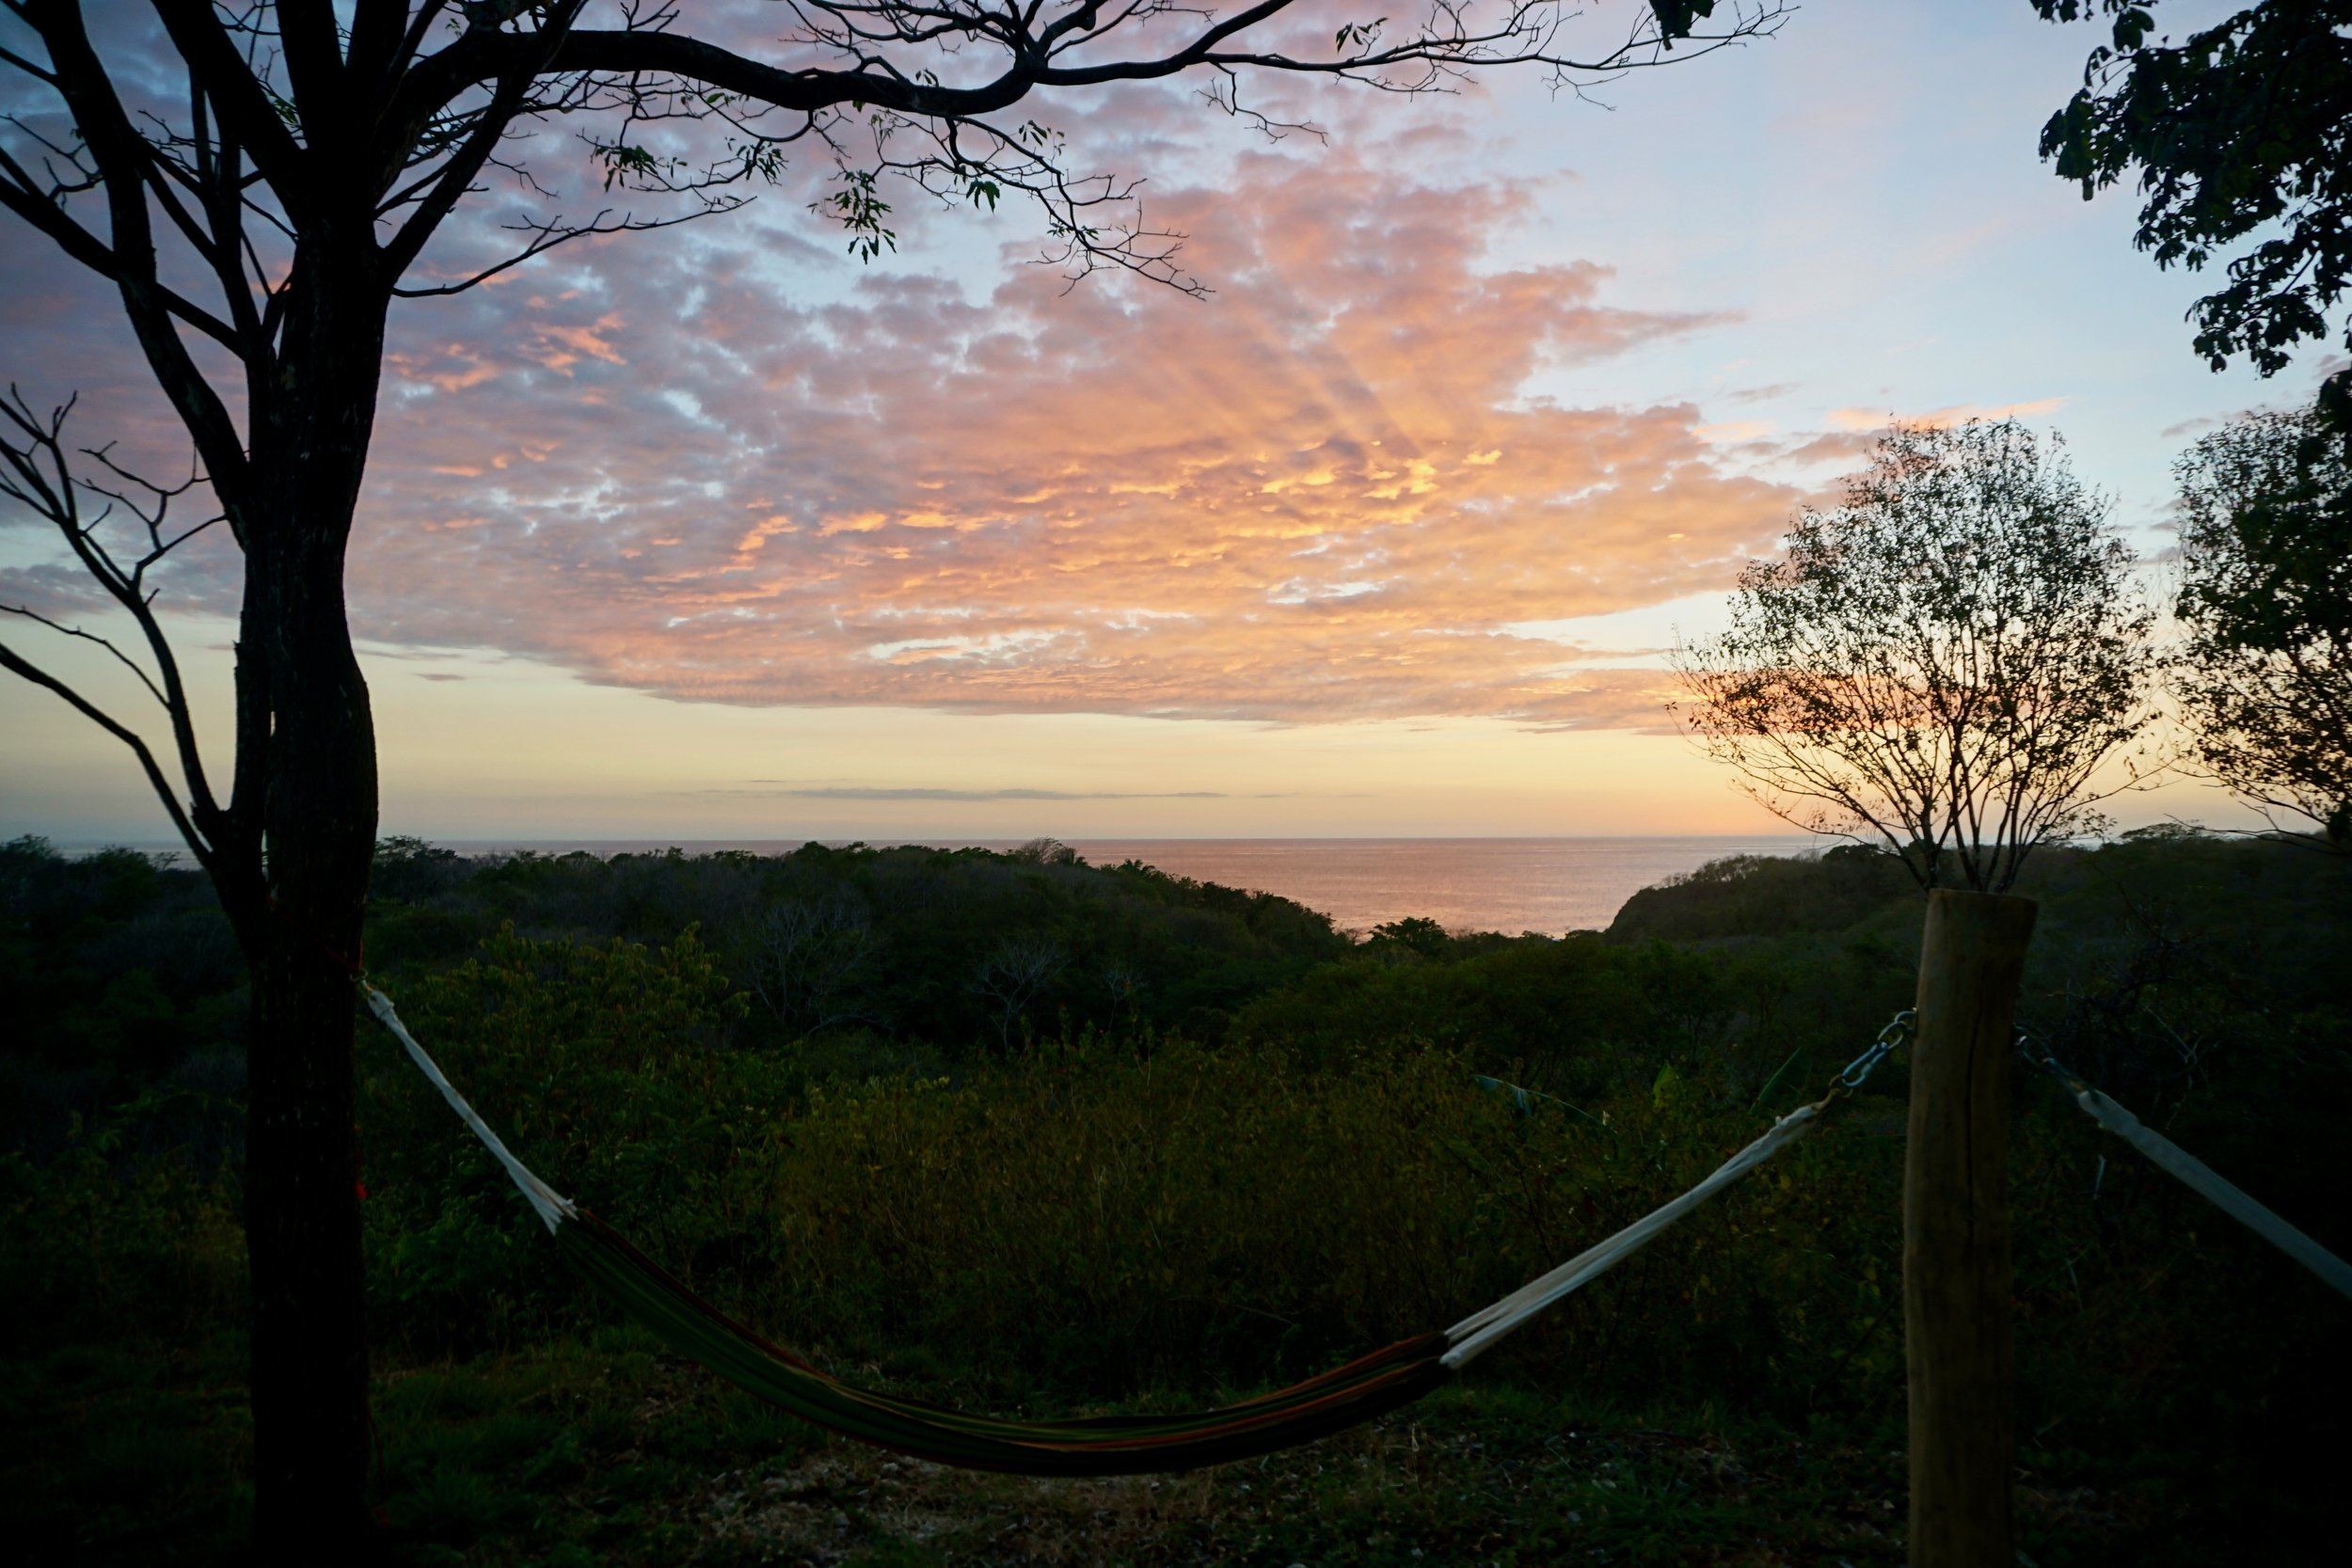 Rayos Del Sol is an all-inclusive Costa Rica retreat property available for group fitness, wellness and yoga retreats, corporate retreats and wedding venues in Nosara.